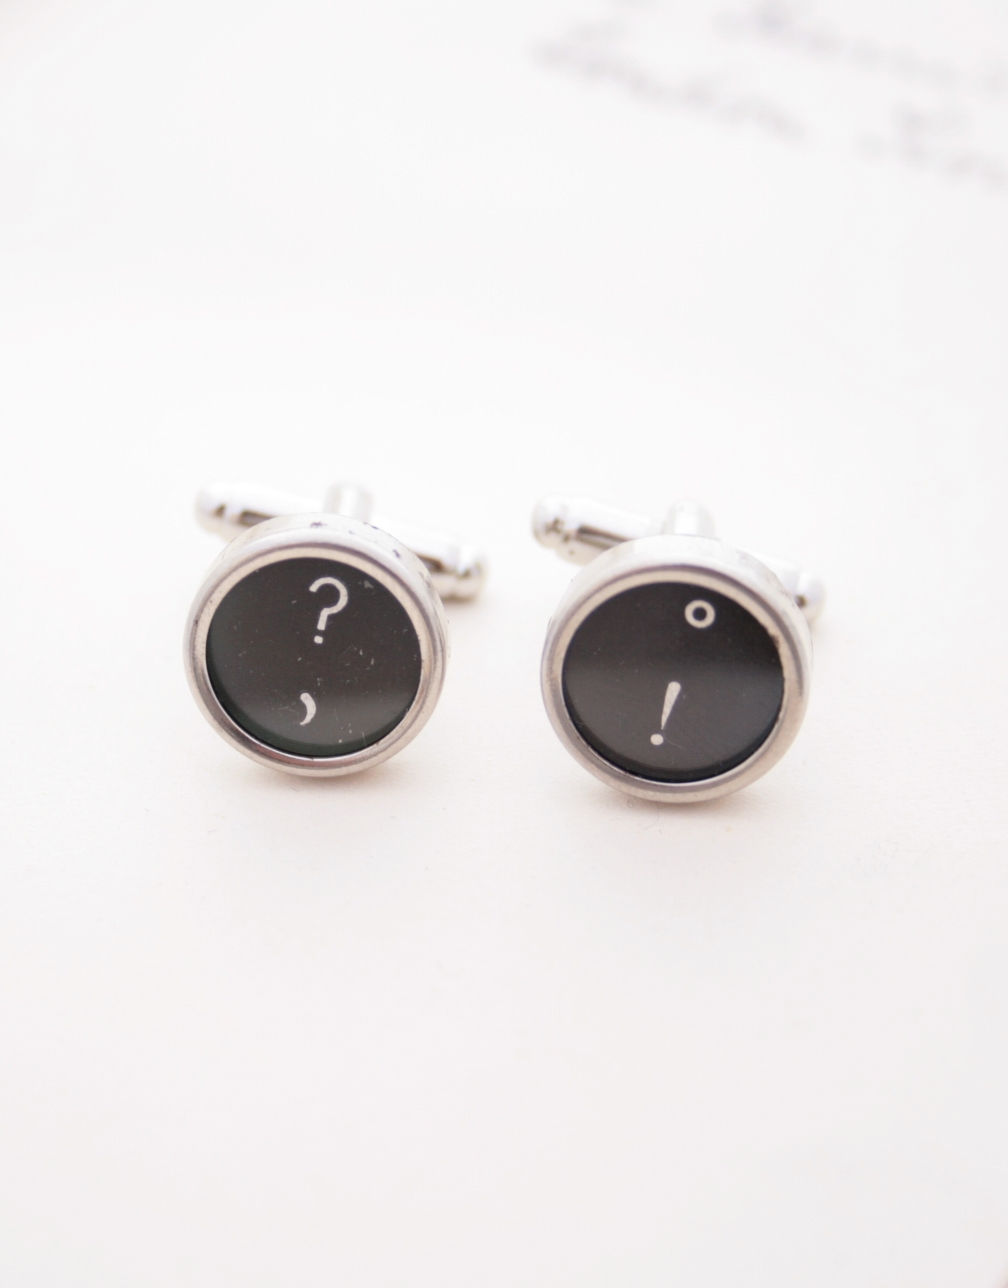 custom cuff links with typewriter keys